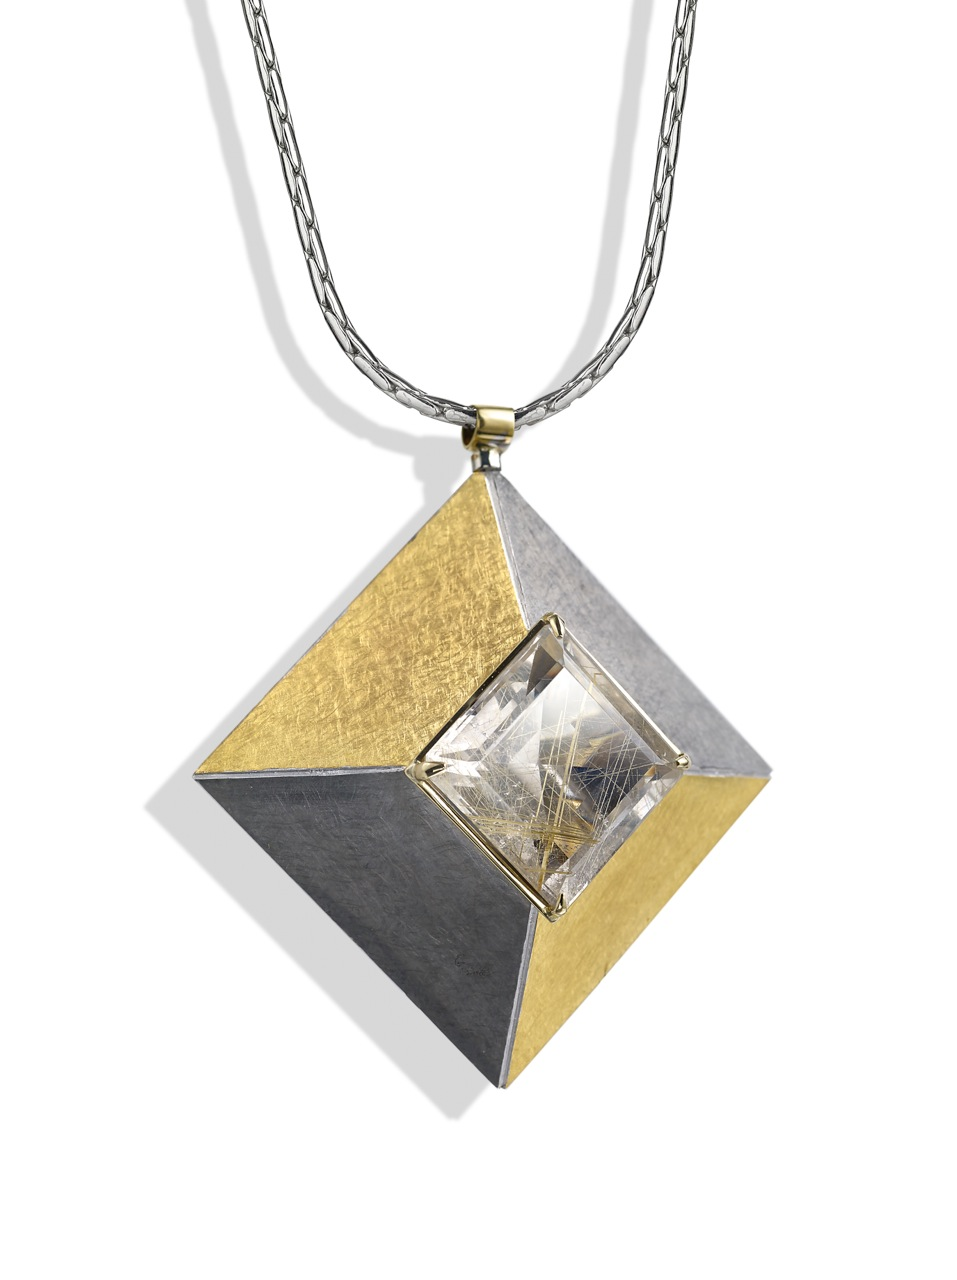 "<a href=""/node/262"">Cardinal Points :  Silver 5.0cm square, scrubbed finish finished in Black Rhodium and gilding,  stone setting 18ct gold, stone Rutilated Quartz . View 2 : side on showing truncated pyramid form. </a>"